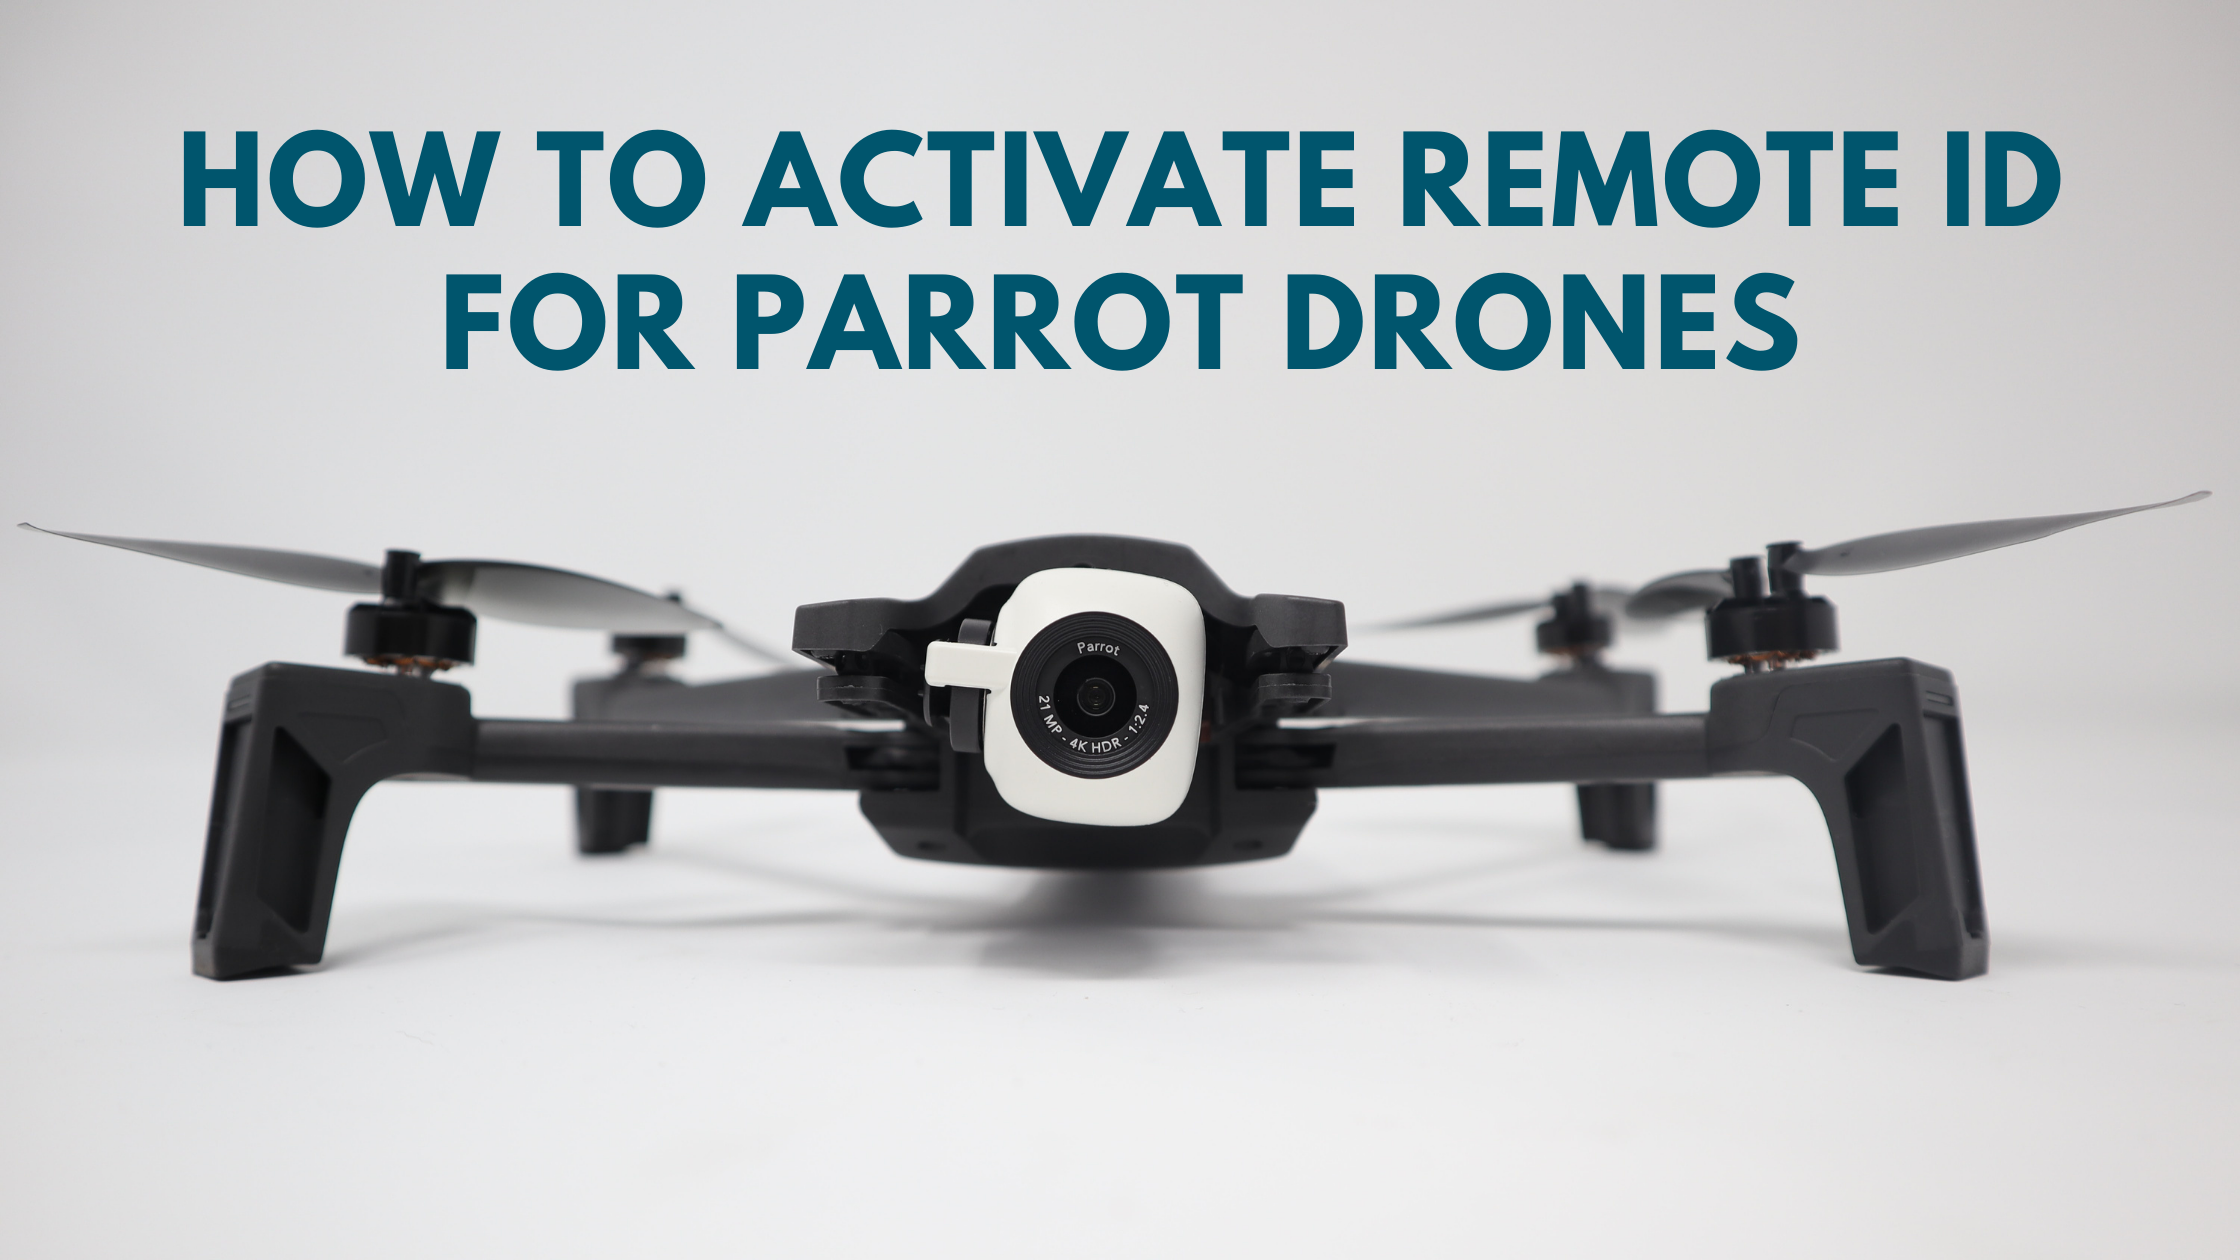 Activate Remote ID for Parrot brand drones